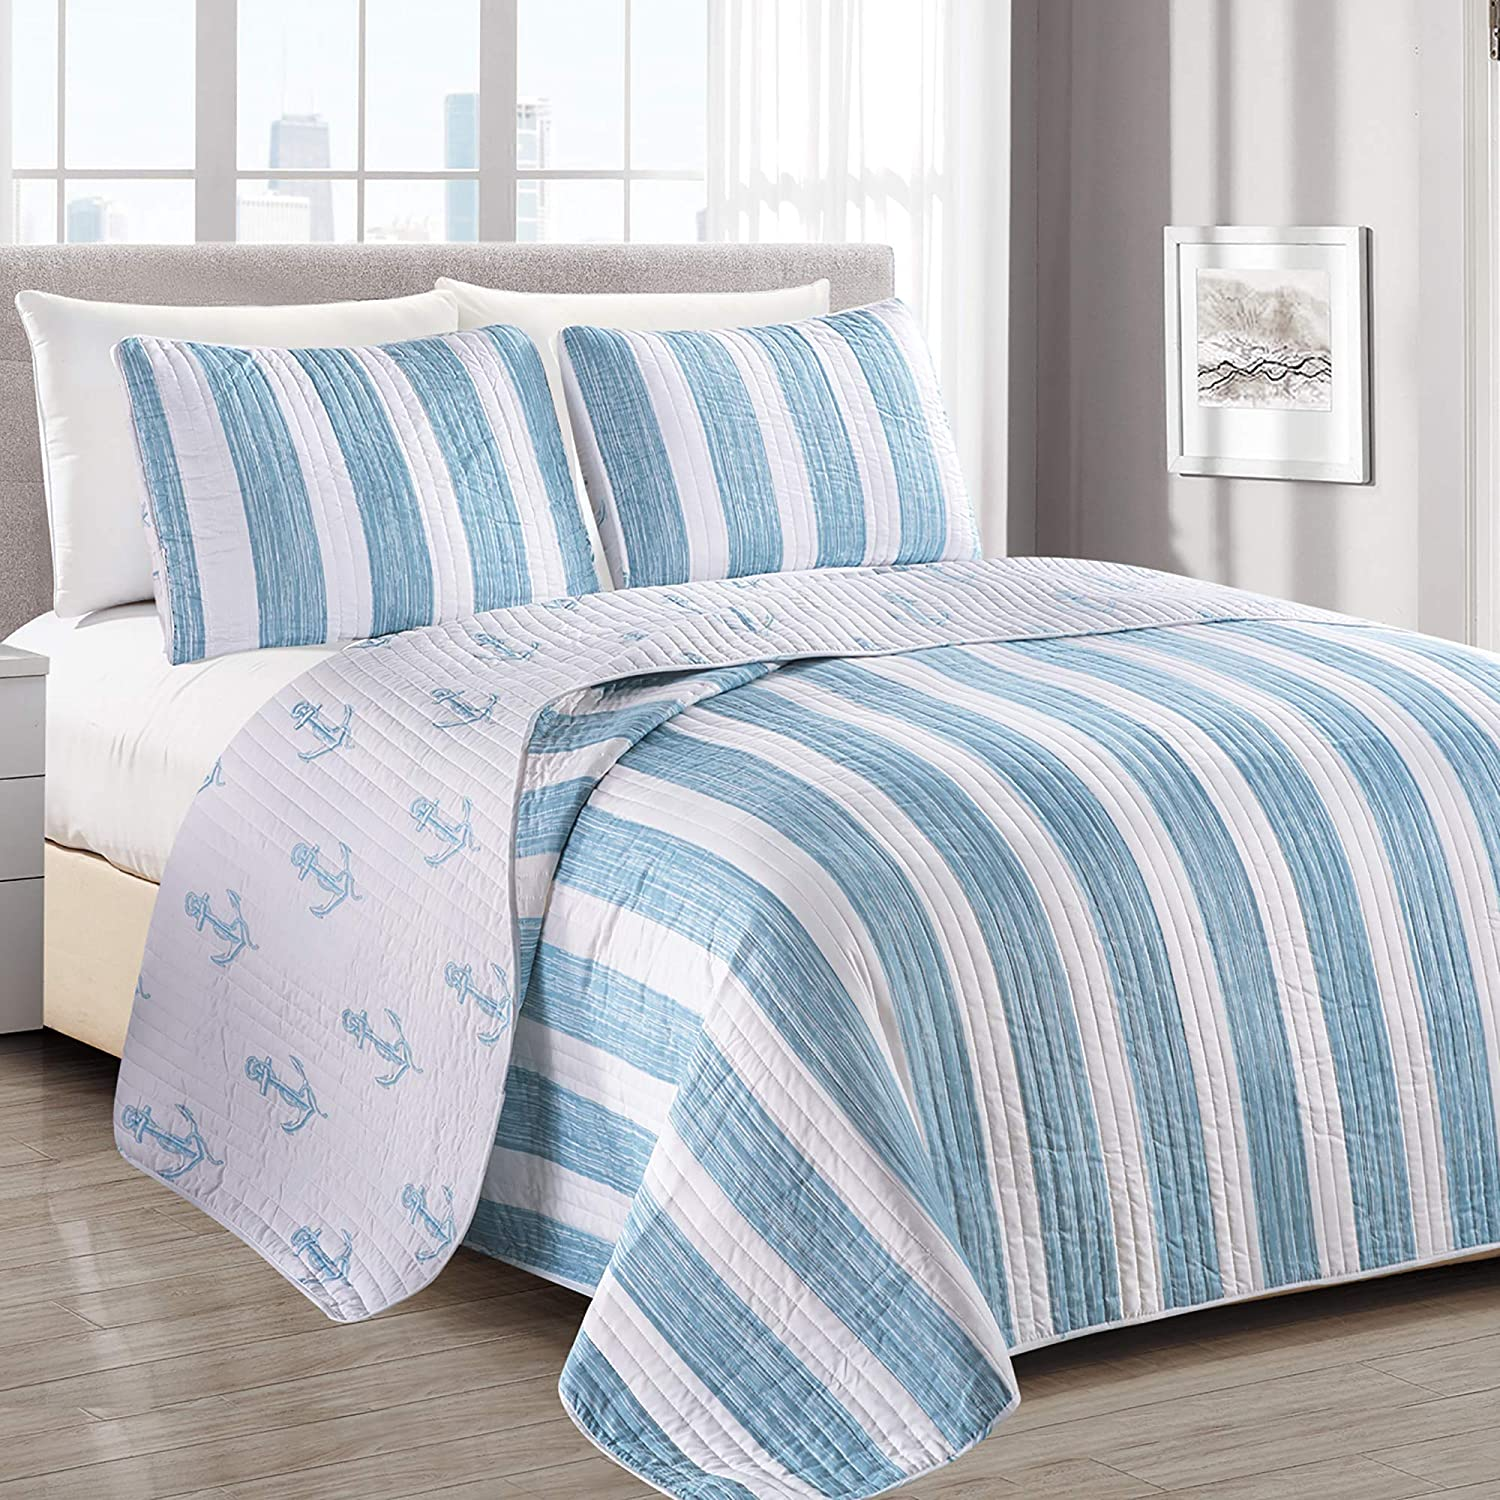 Casco Bay Coastal Collection 3 Piece Quilt Set with Shams. Reversible Beach Theme Bedspread Coverlet. Machine Washable. (Full/Queen, Blue)